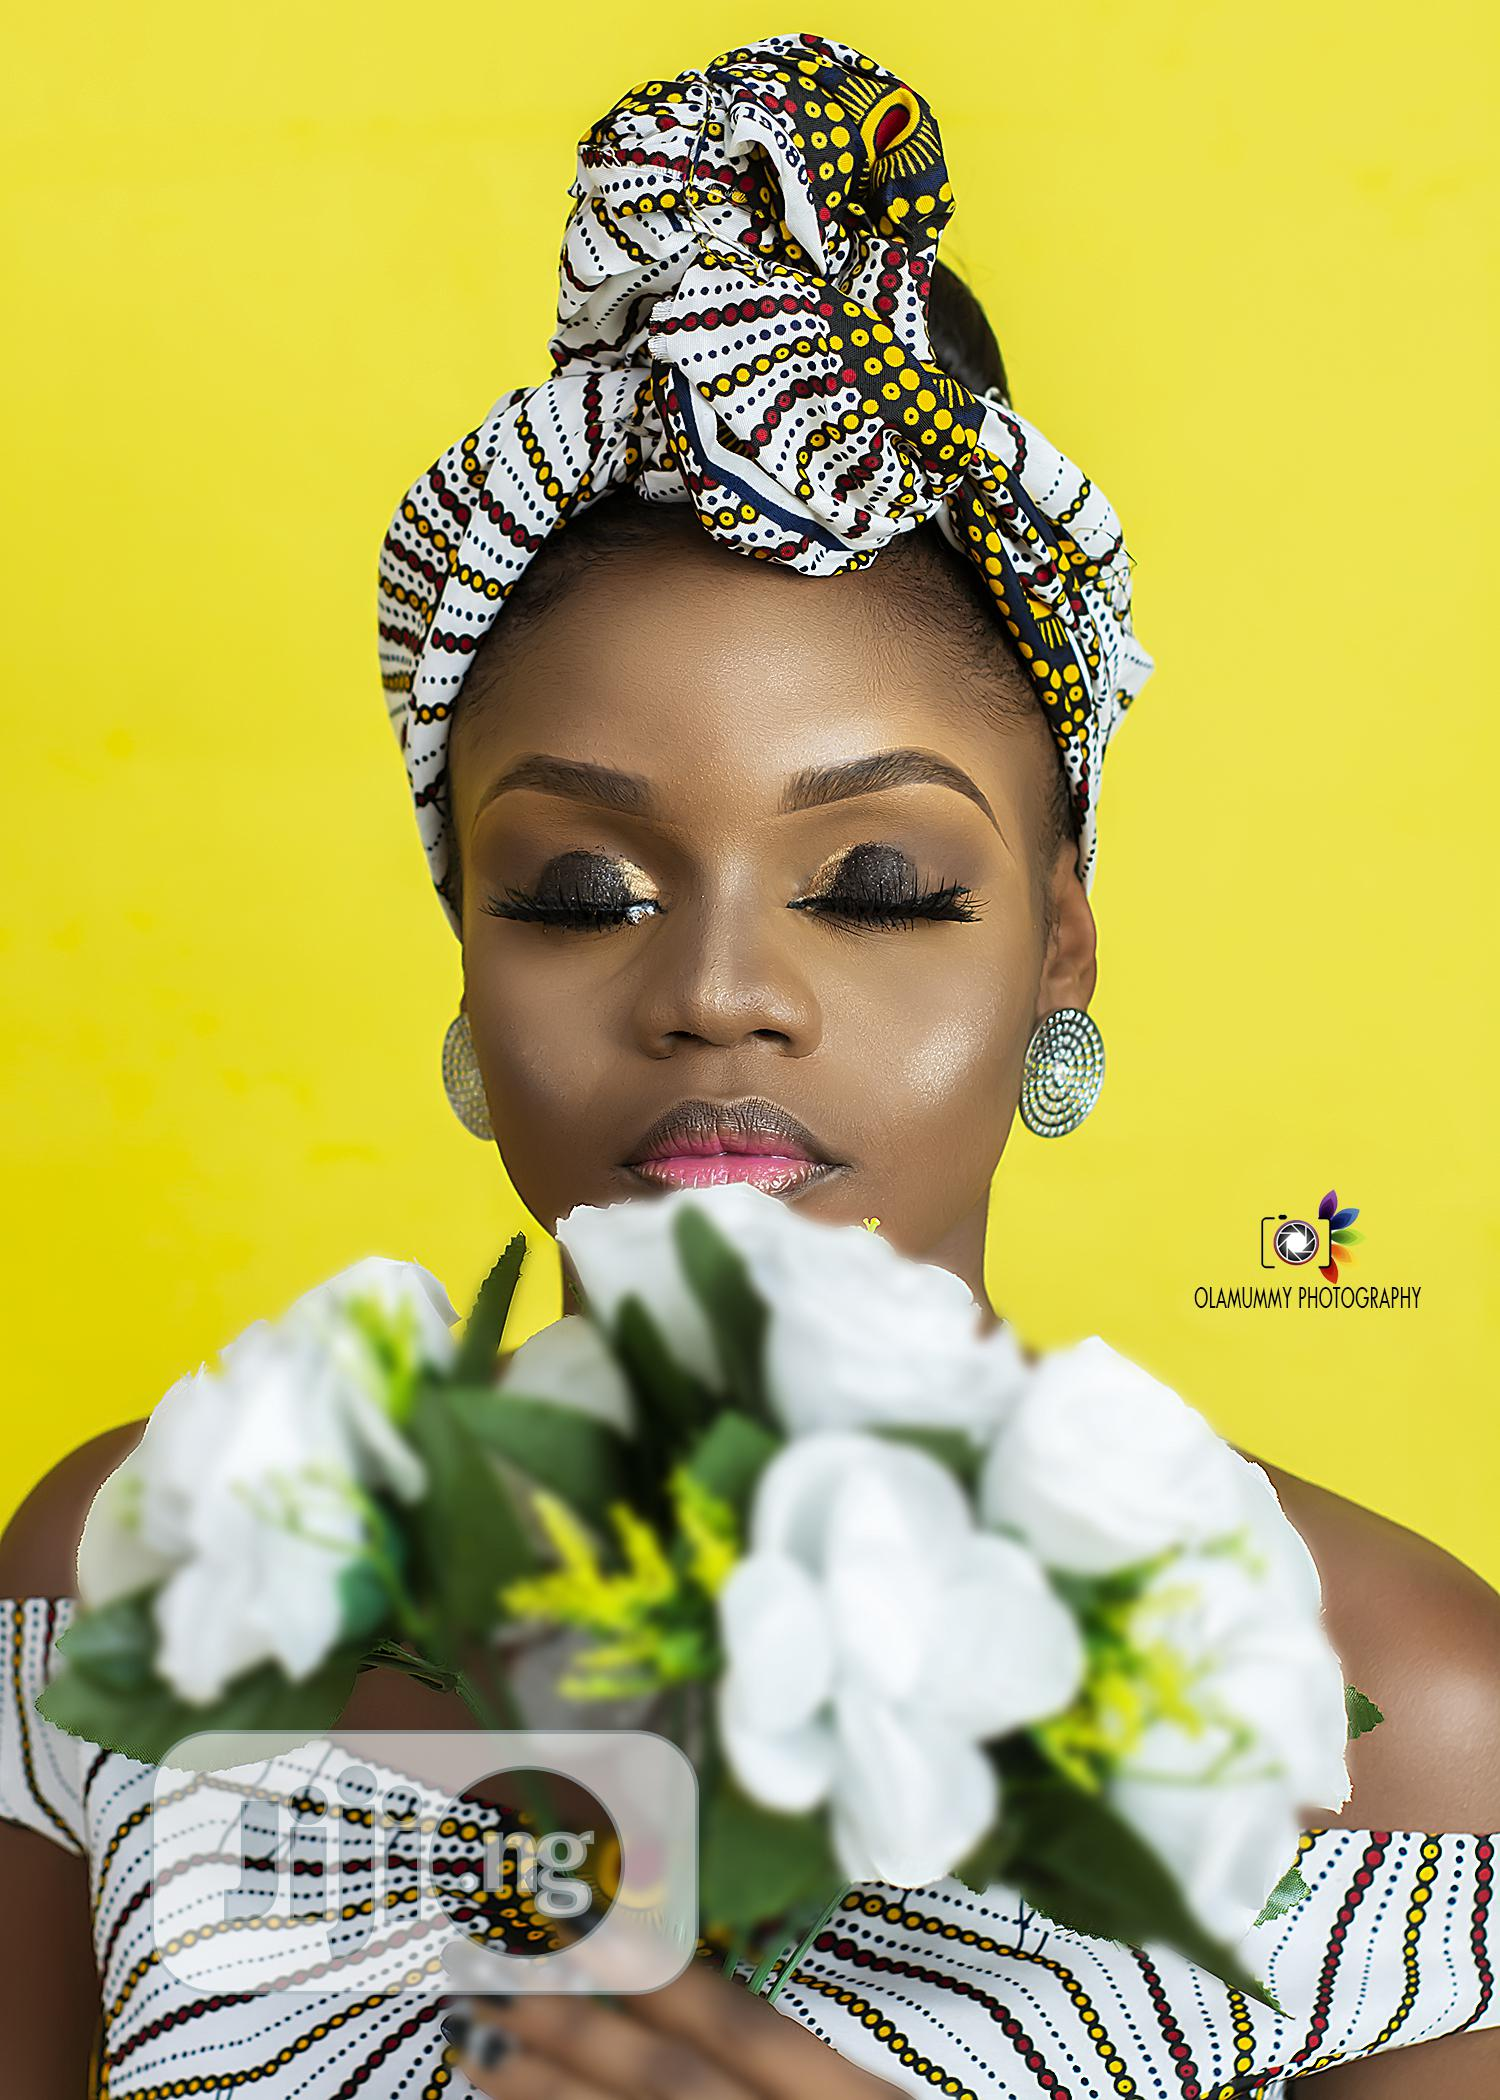 Portrait Photography, Birthday Shoot | Photography & Video Services for sale in Ikorodu, Lagos State, Nigeria